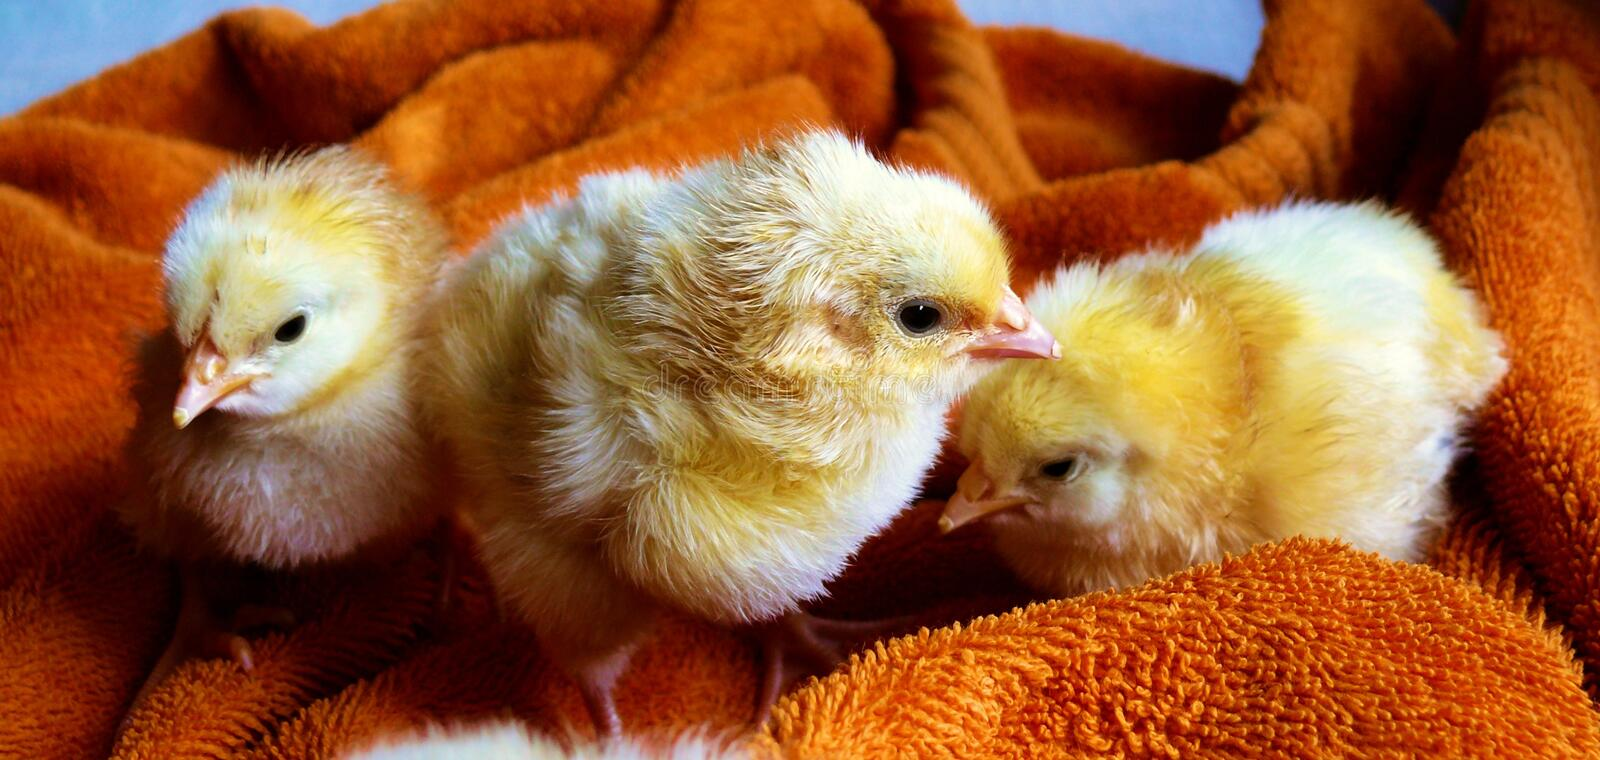 Cute Chicks Resting On Blanket Free Public Domain Cc0 Image